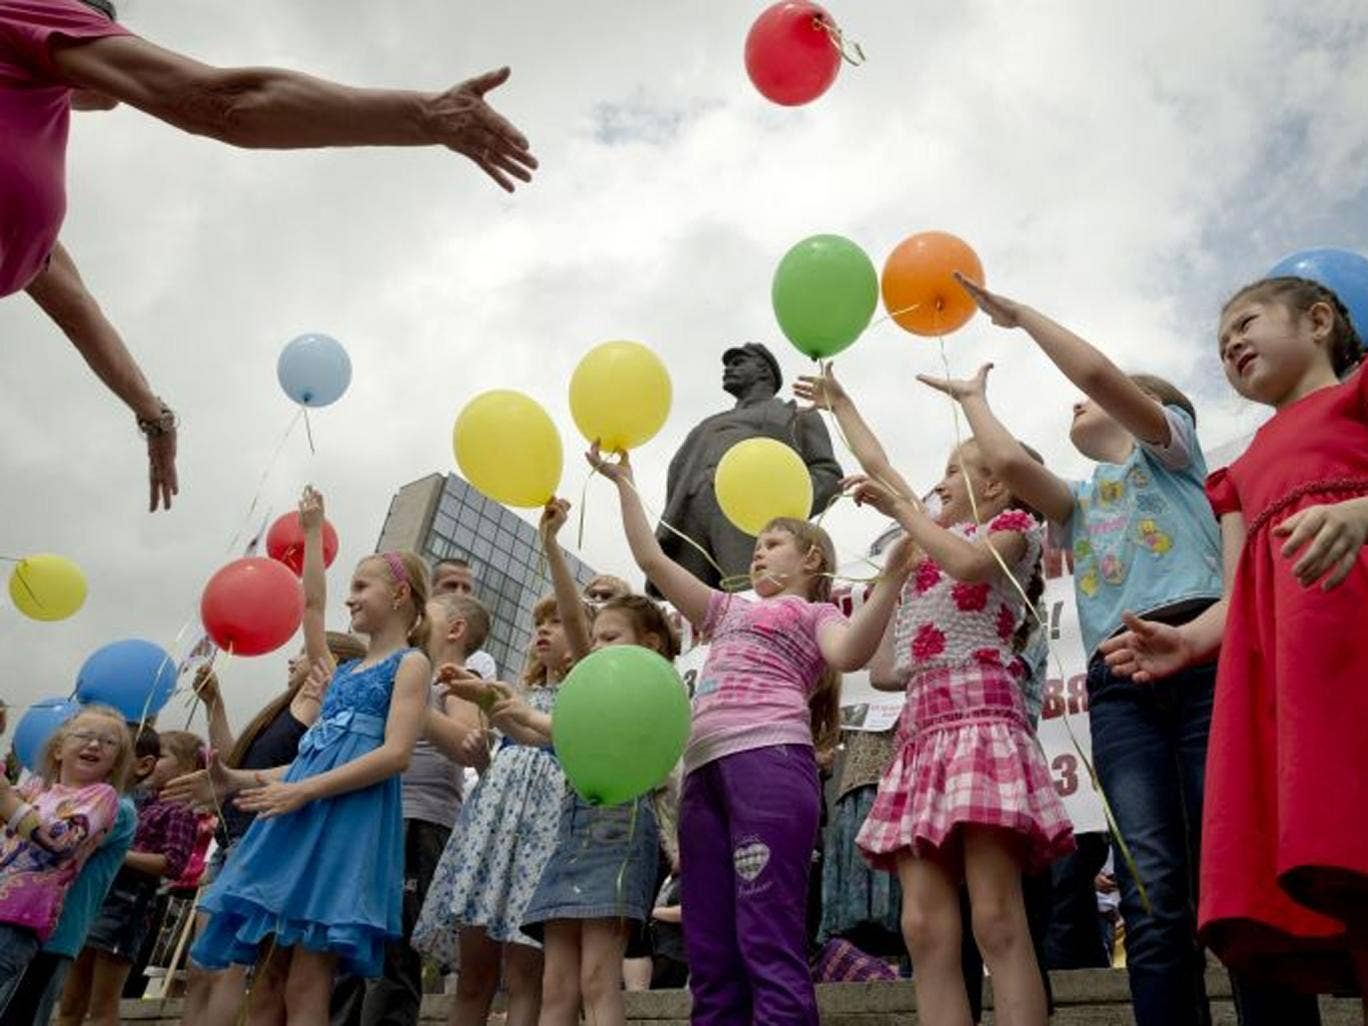 Children release balloons, back dropped by a statue of Lenin, during a pro-Russian rally in Donetsk, Ukraine, Sunday, June 1, 2014. On Saturday, Russiaís Foreign Ministry criticized a suggestion by an official from the Organization for Security and Cooper